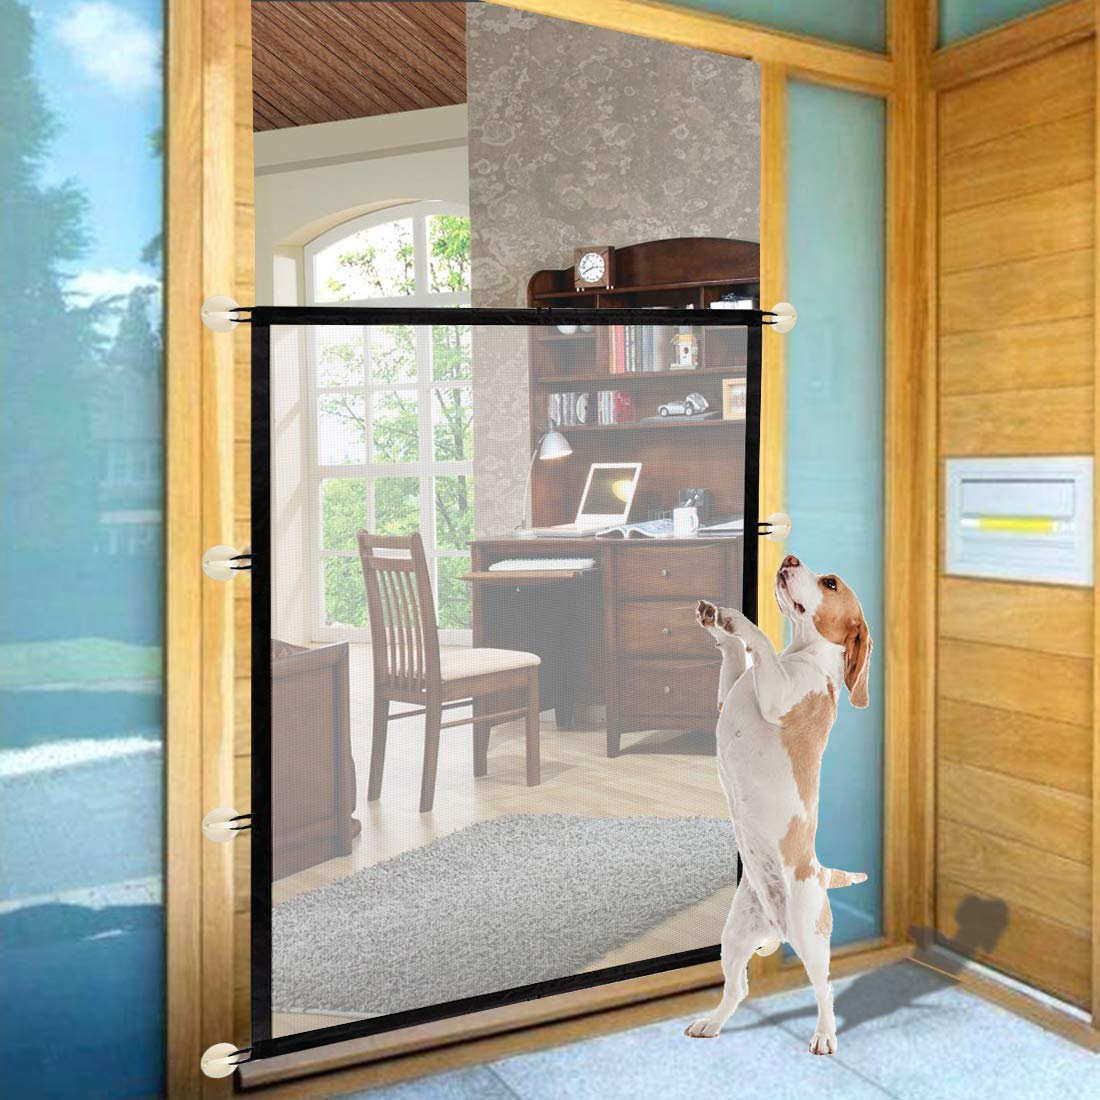 40X60 Inch Magic Gate Heighten Size Hund Gate 14 Hooks Portable Folding Pet Gate Safe Guard Isolated Gauze Indoor und Outdoor Install Anywhere (Black)